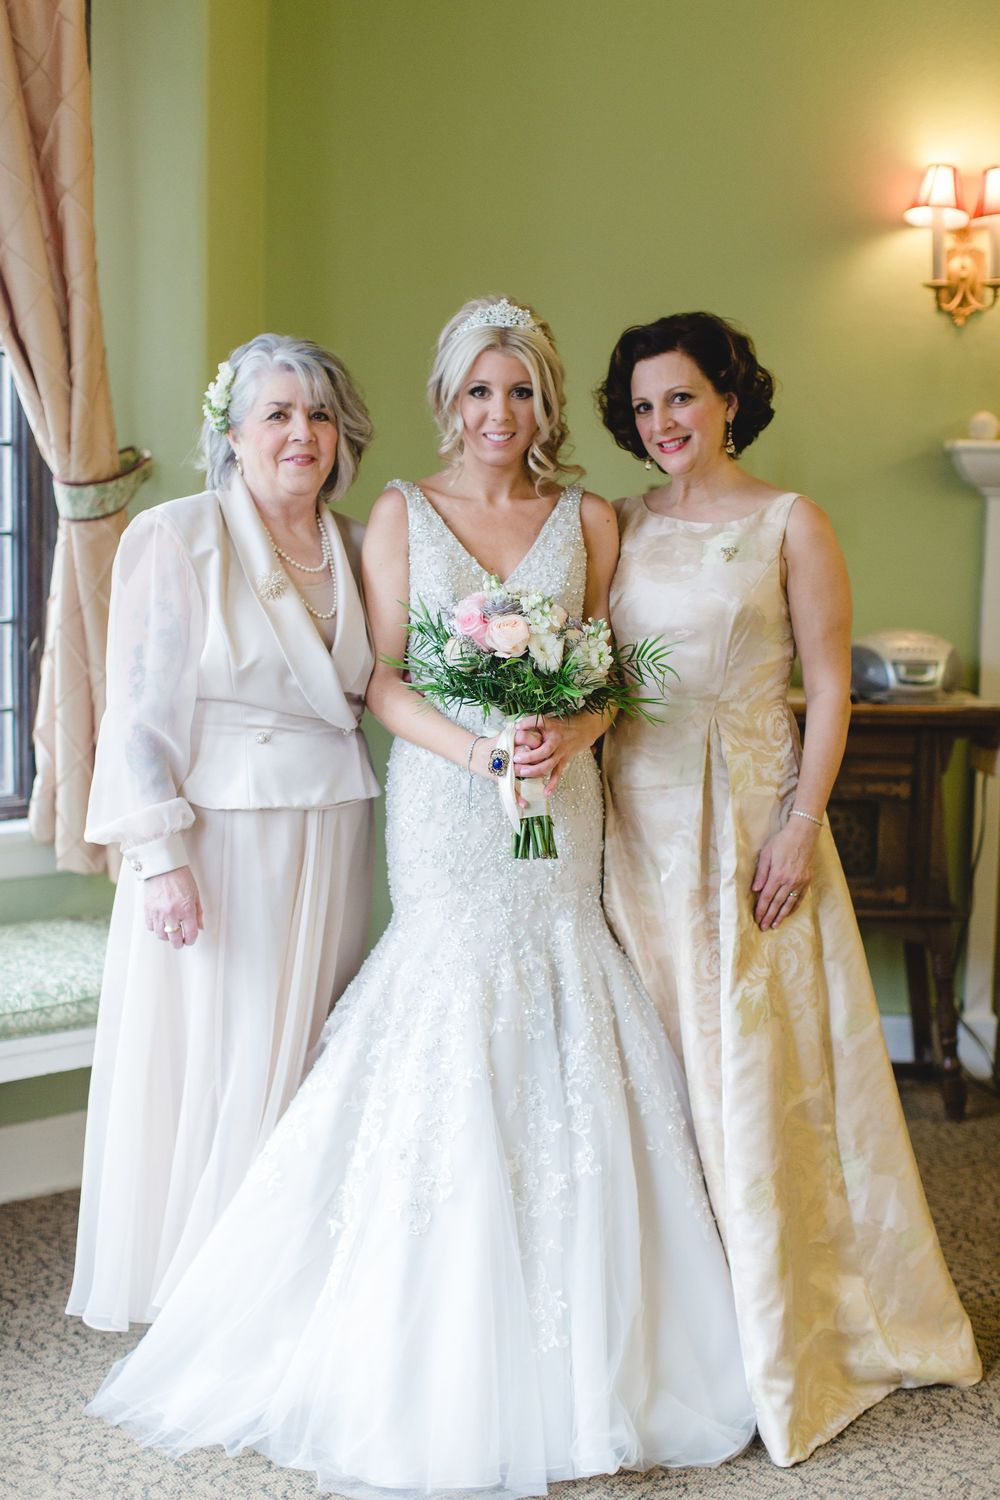 My beautiful mom, my precious daughter on her princess day, and myself. Photo courtesy of Rebekah Albaugh Photography